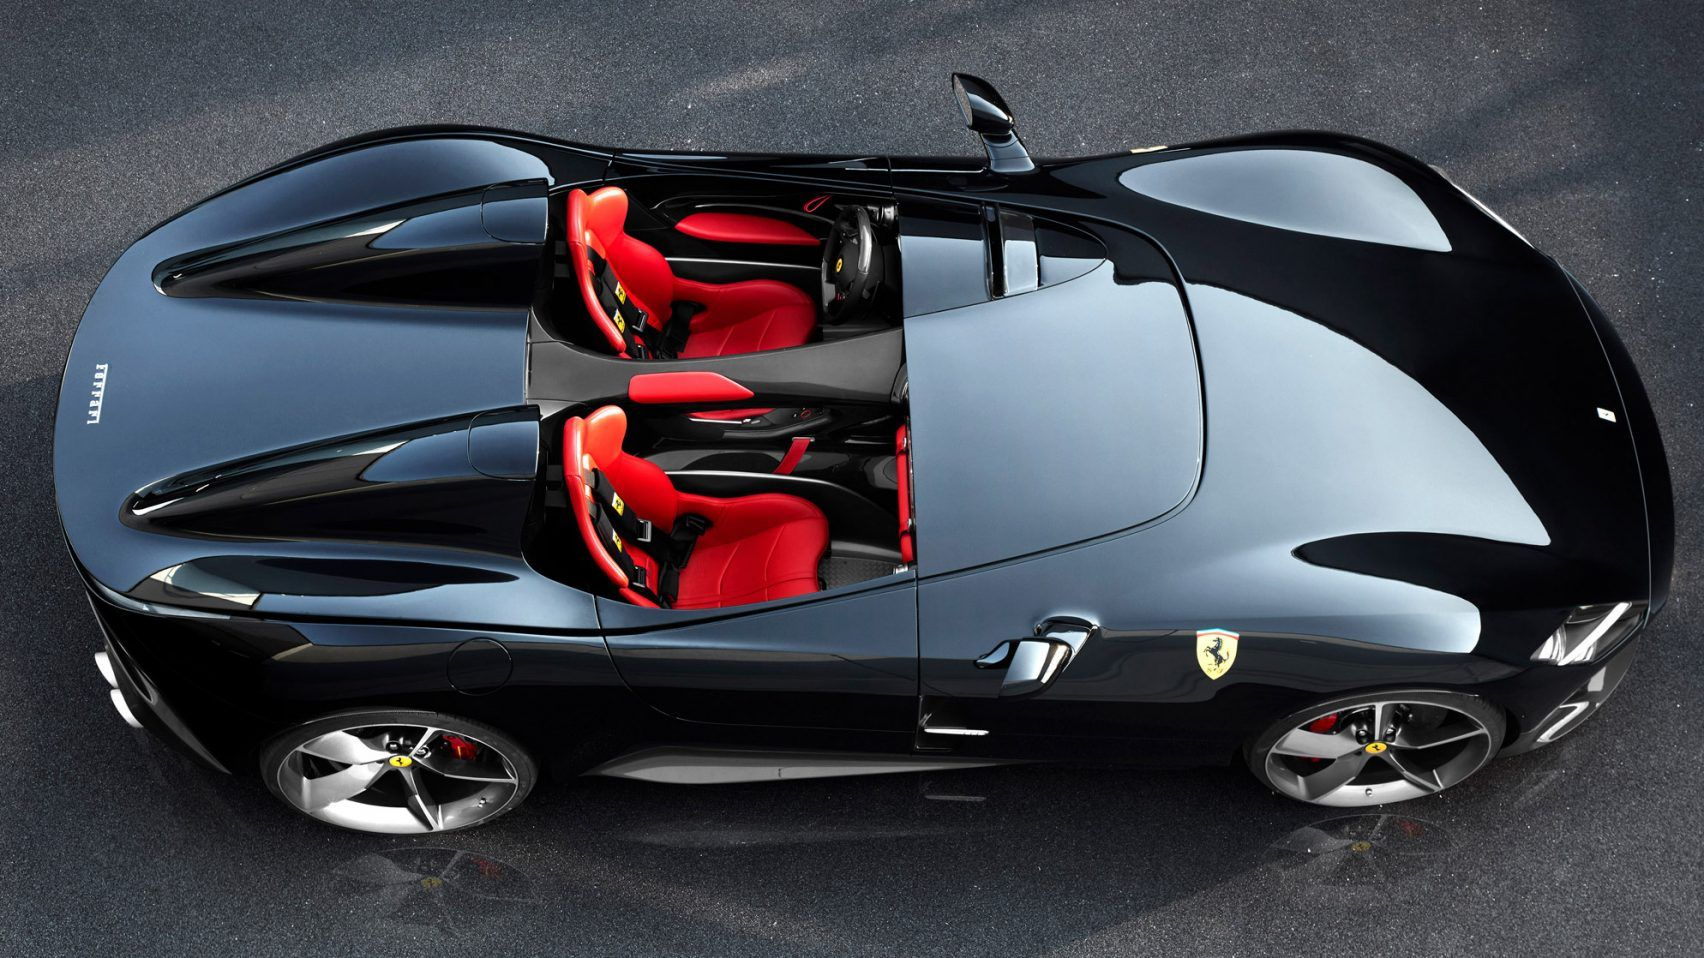 Ferrari S Latest Sports Car Has No Windshield Or Roof Race Cars First Cars Super Cars